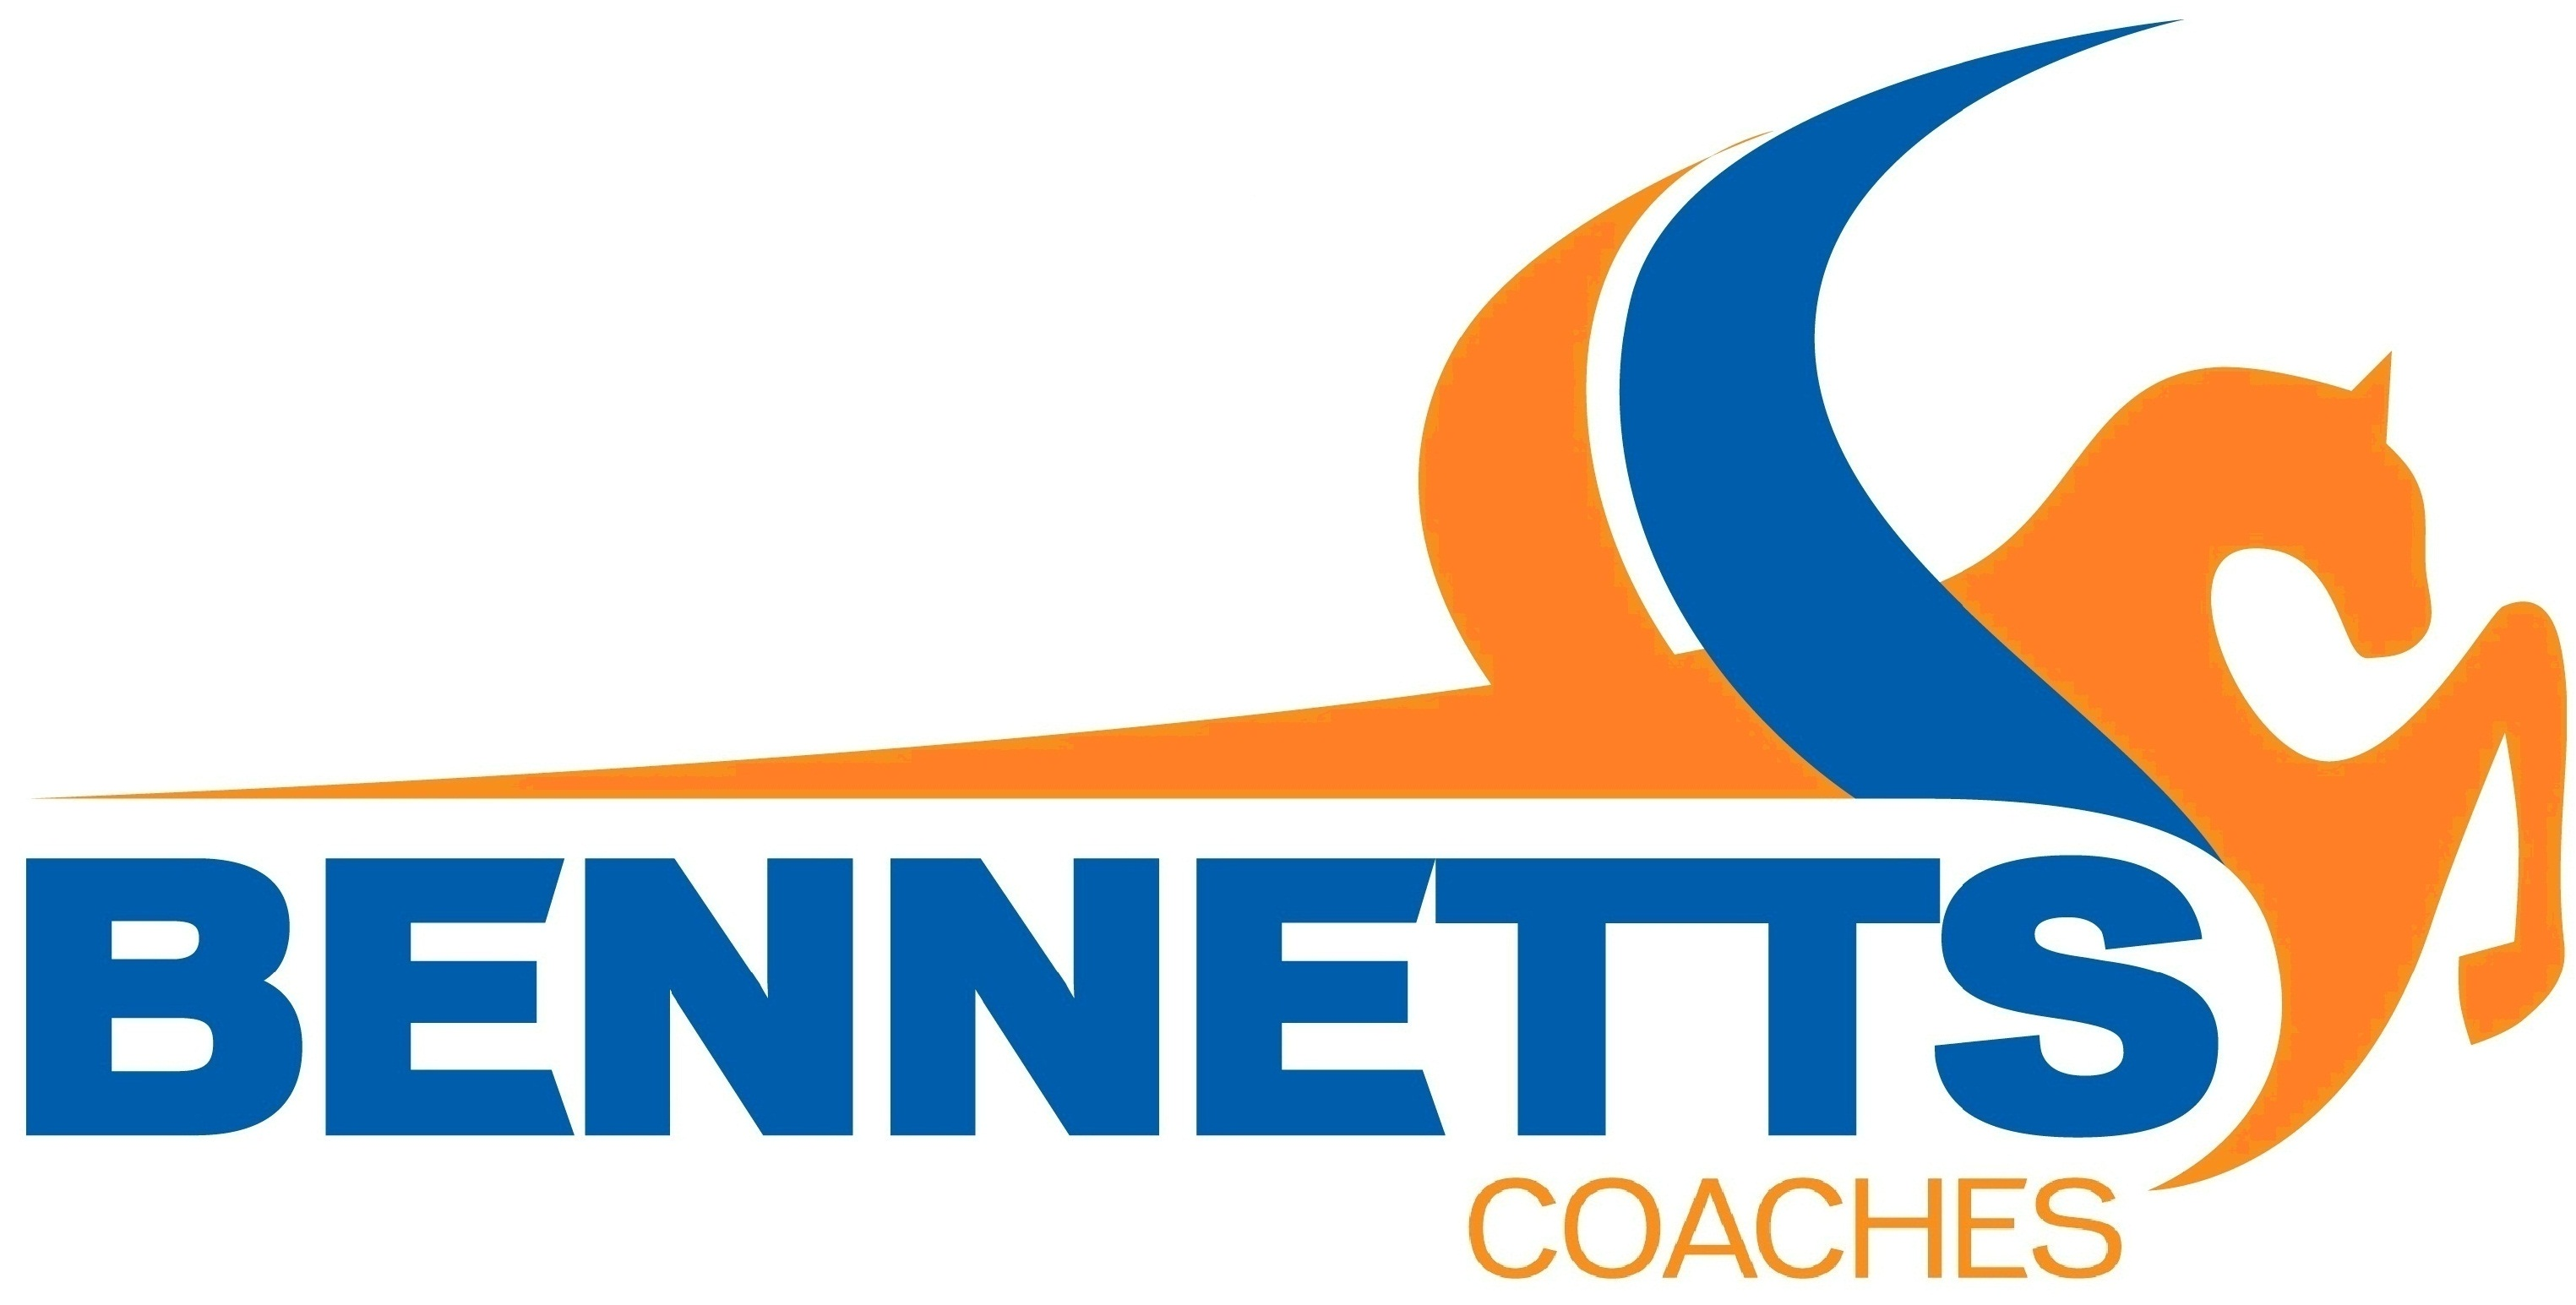 Bennetts Coaches